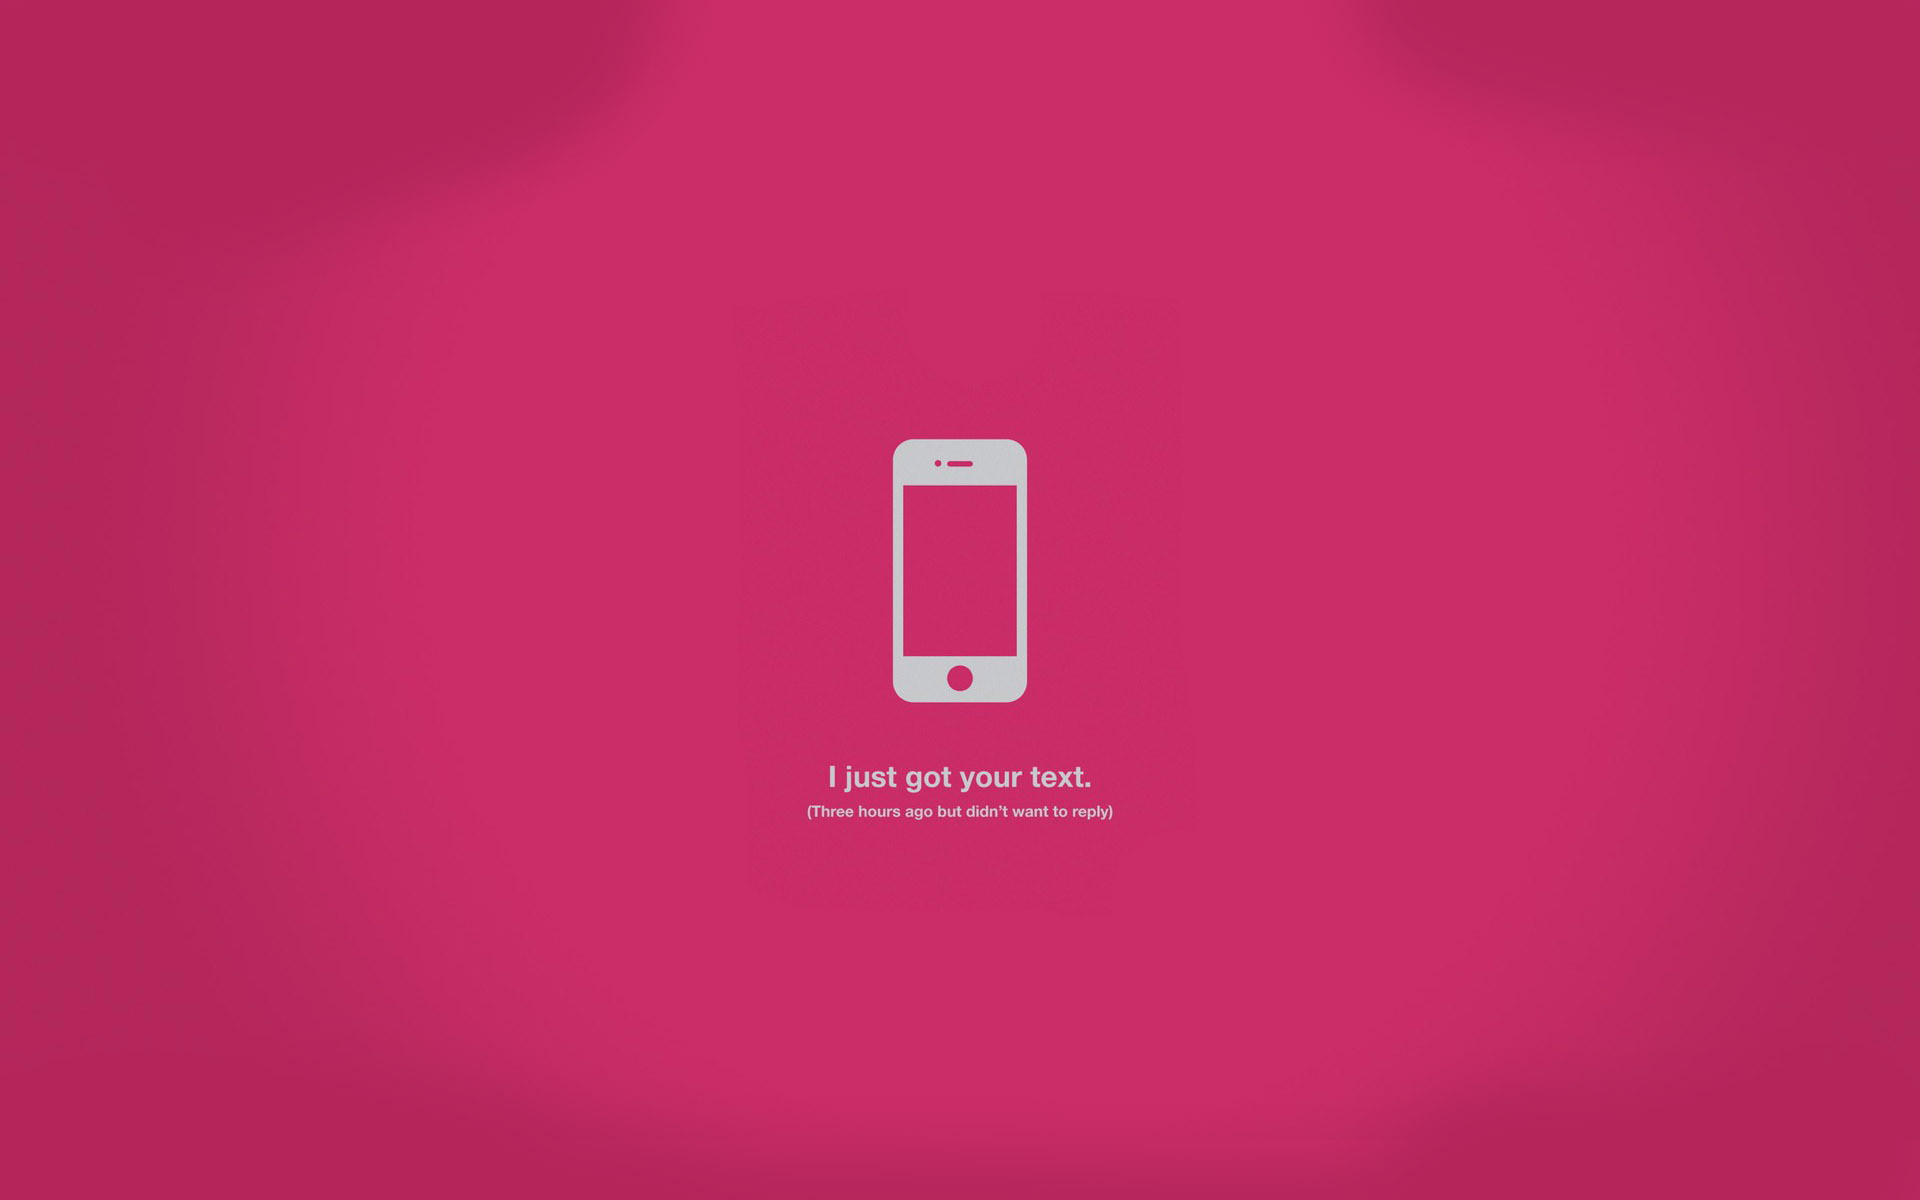 Wallpaper with message